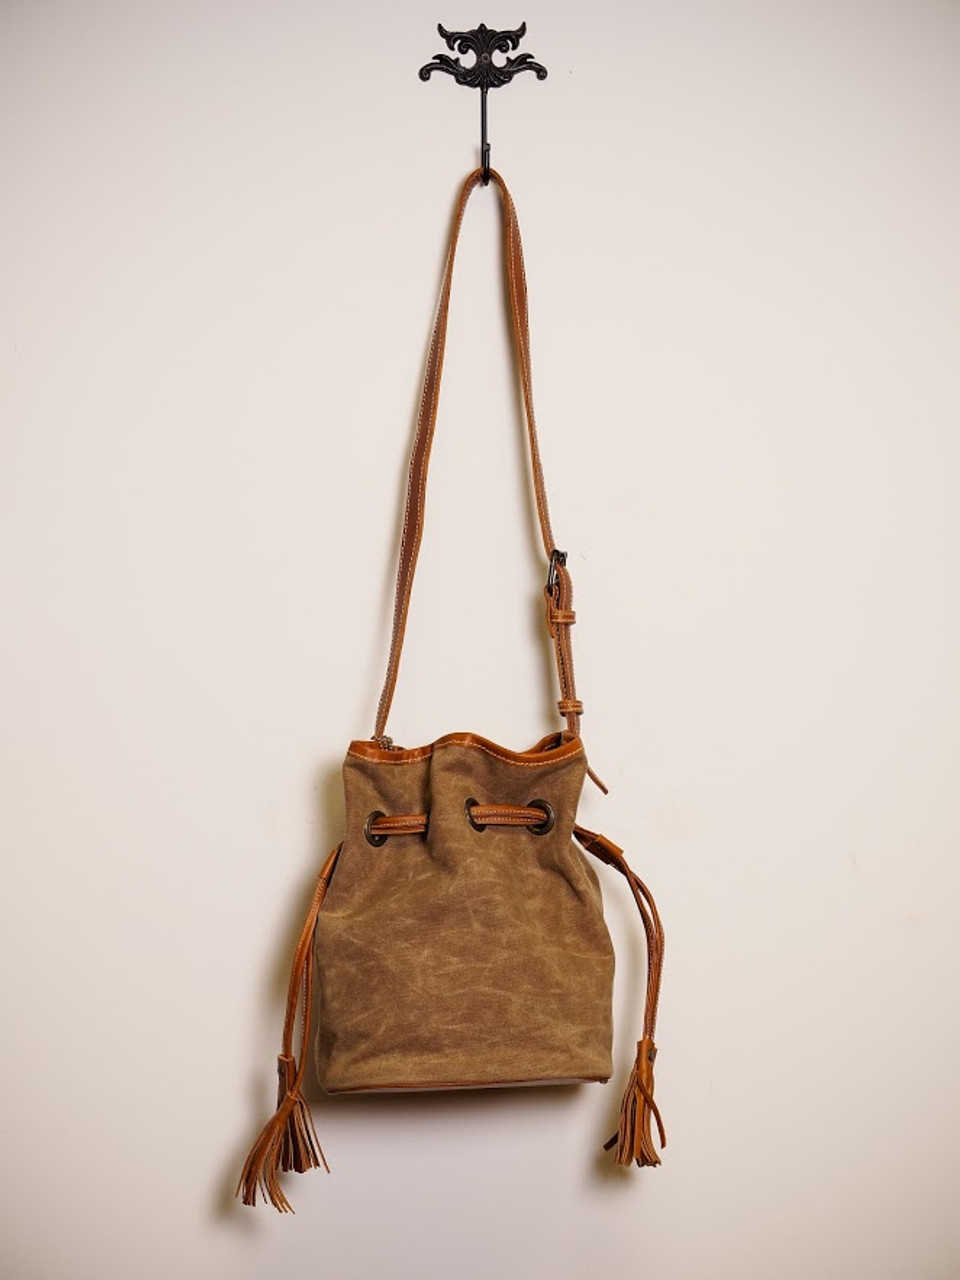 Correa Canvas Bucket Bag in Indio Whiskey & Tan